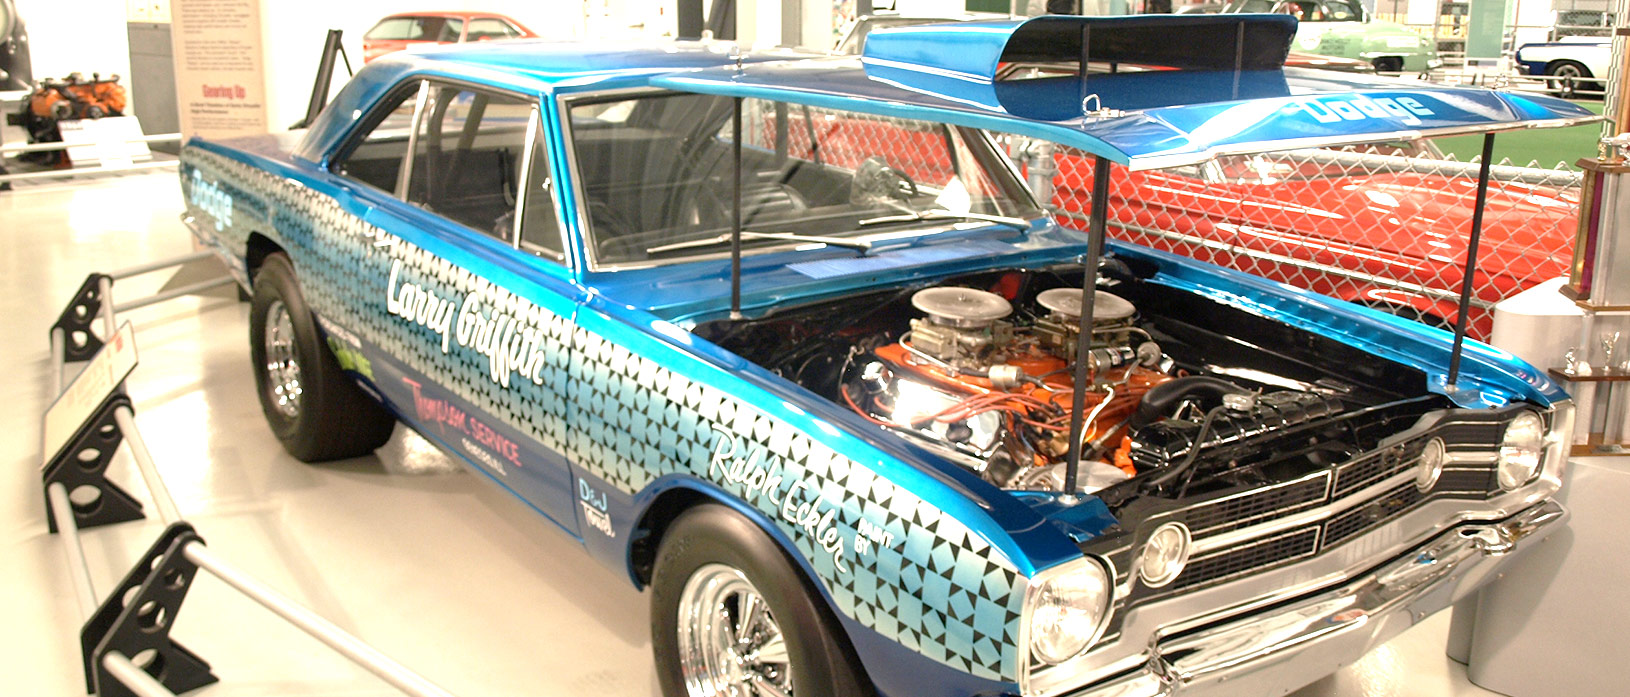 The black underhood paint on Larry Griffith's HEMI Dart is correct. HEMI Darts were partially assembled at Dodge's Hamtramck, Michigan, assembly line as running cars with 383 engines (to prevent a lot of manual pushing). From there, they were trucked to a nearby Hurst modification center for final assembly. To prevent rust, the bodies were painted black (interior, door sills, engine bay, trunk compartment) while gray primer went on the body.